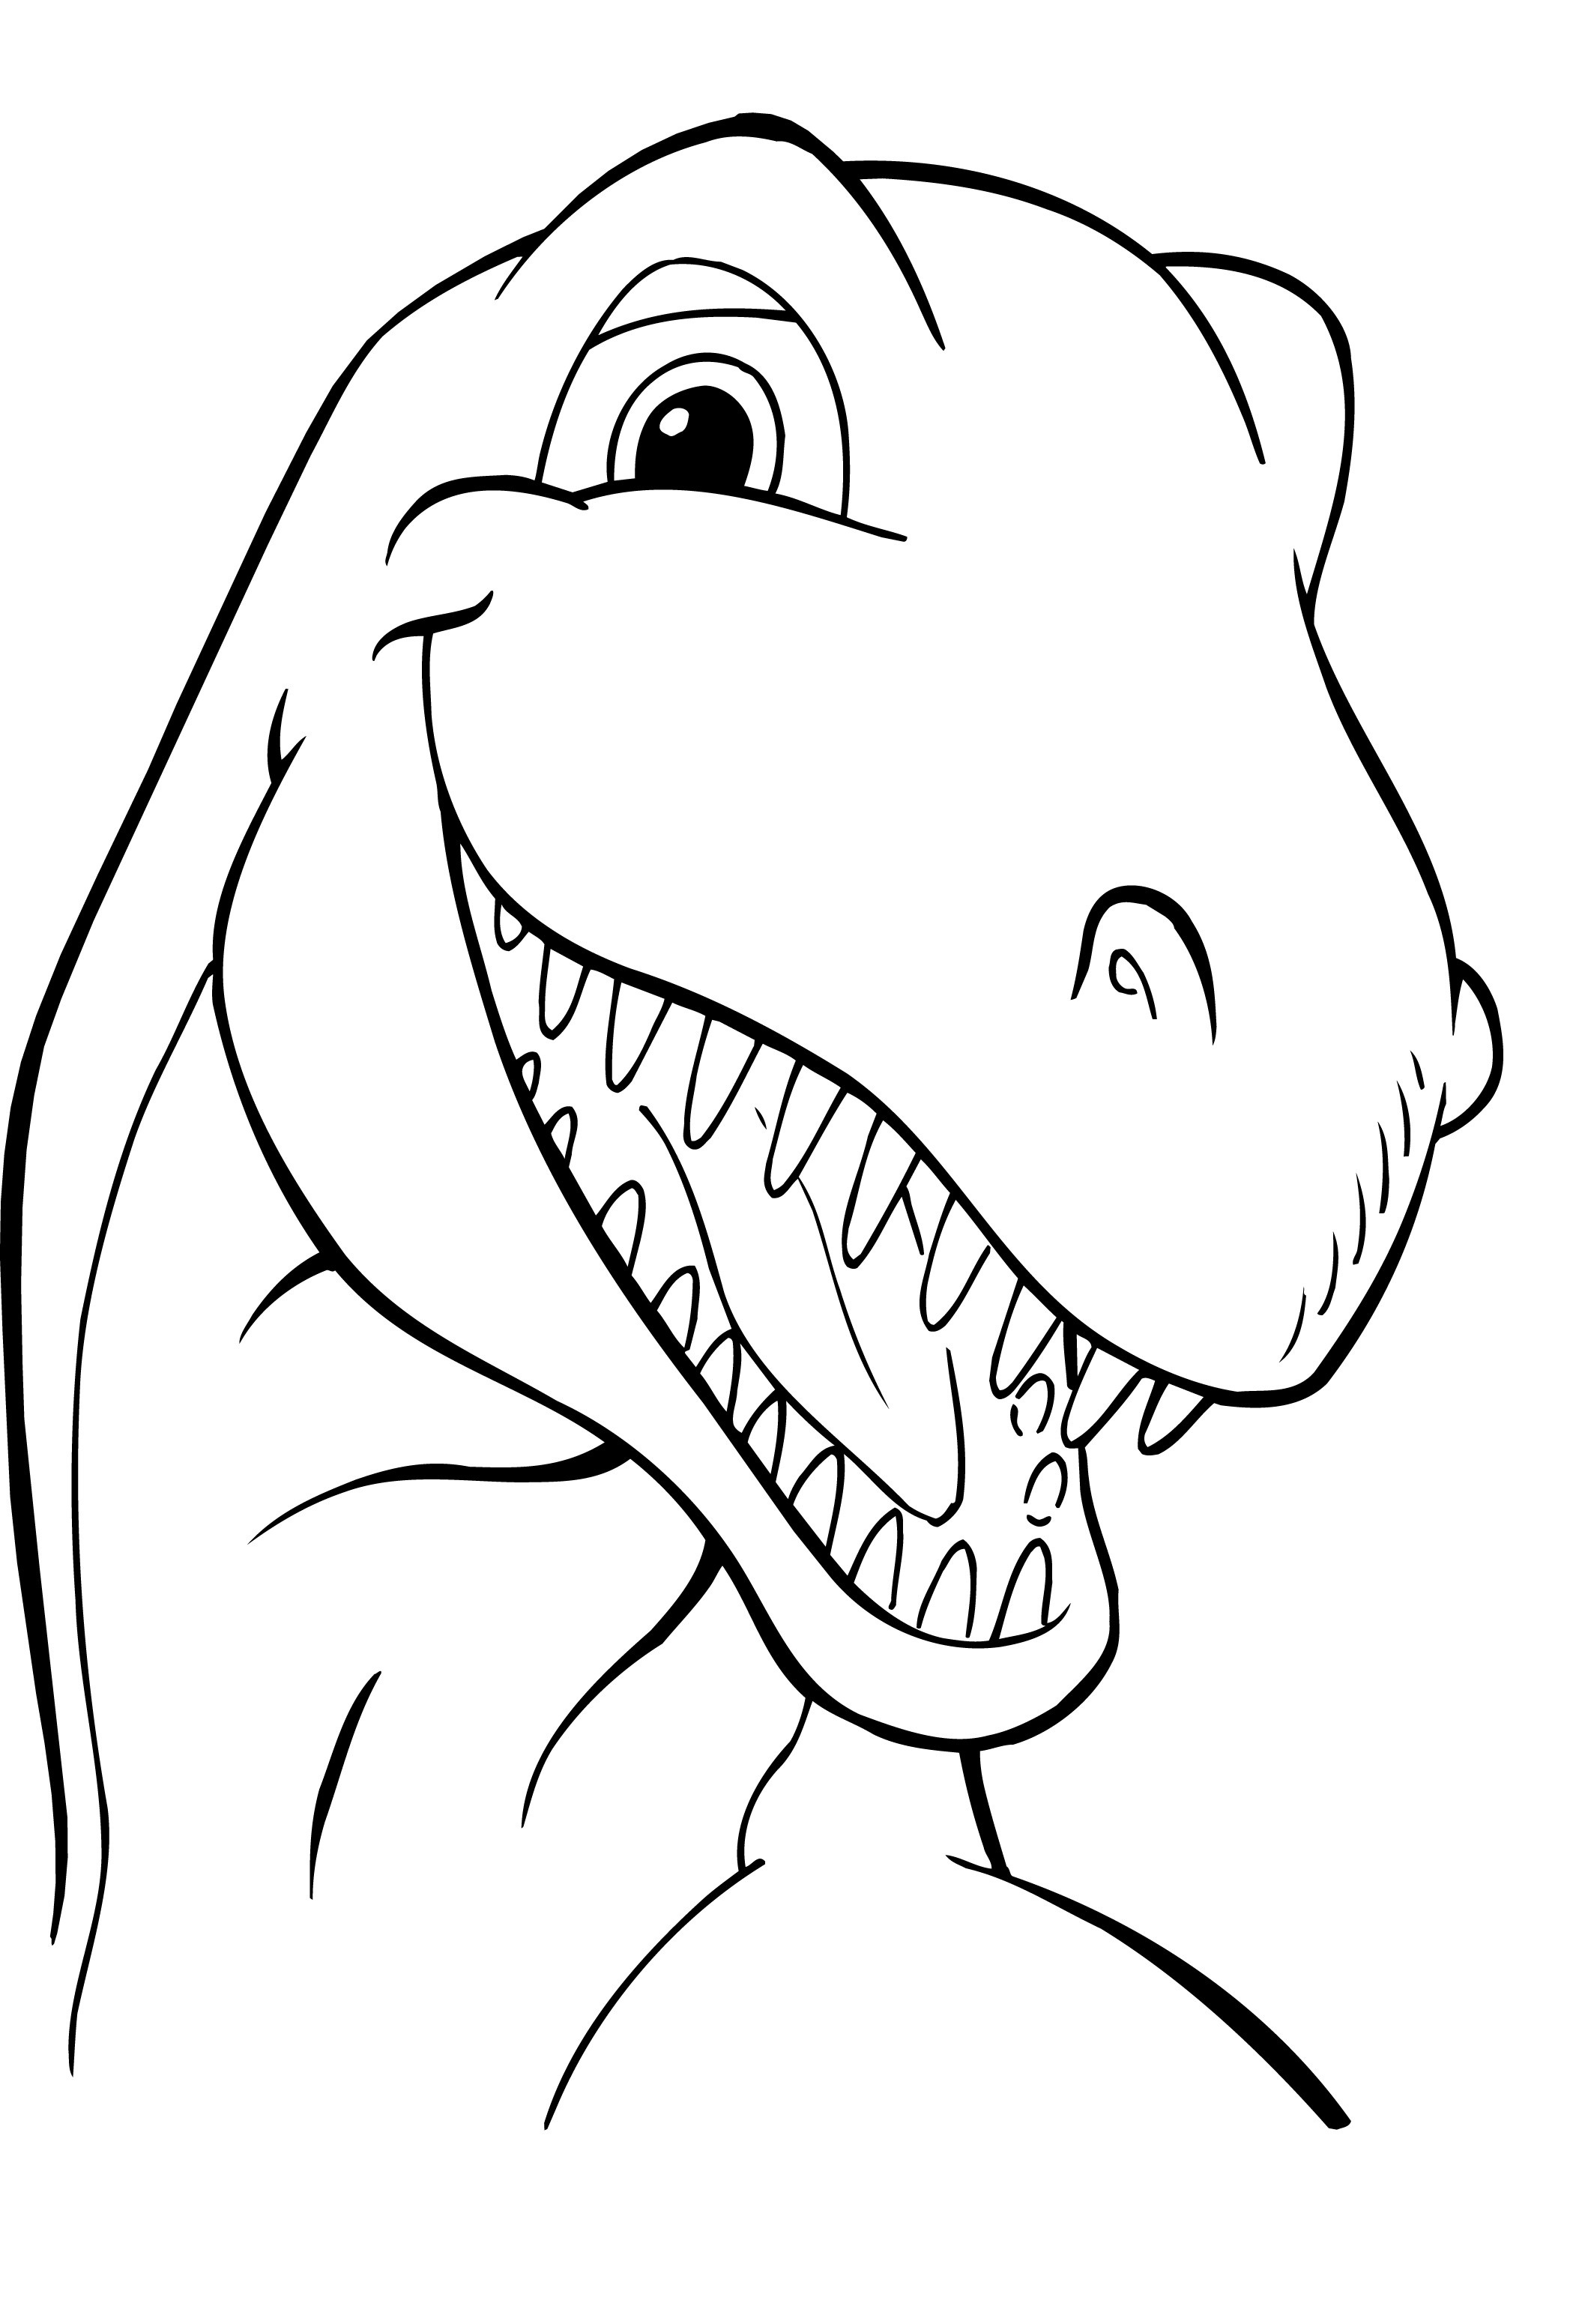 dinosaur color baby dinosaur coloring page free download on clipartmag color dinosaur